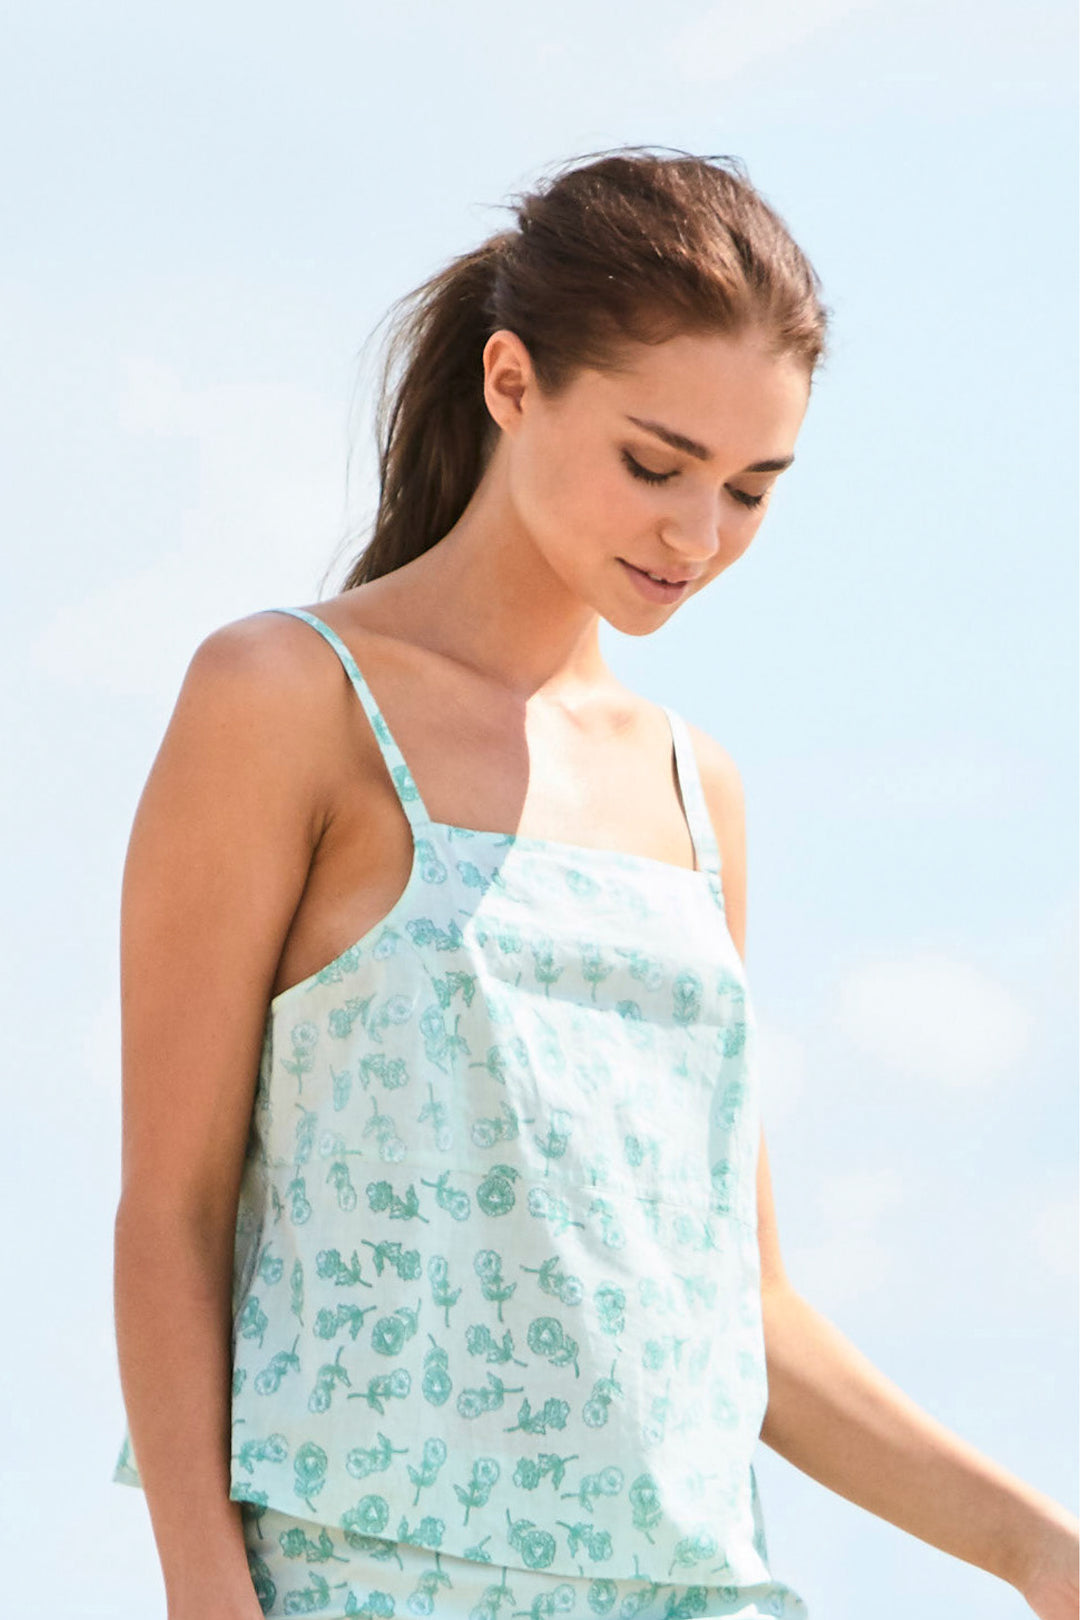 hand printed mint green dandylion cotton camisole top foundling